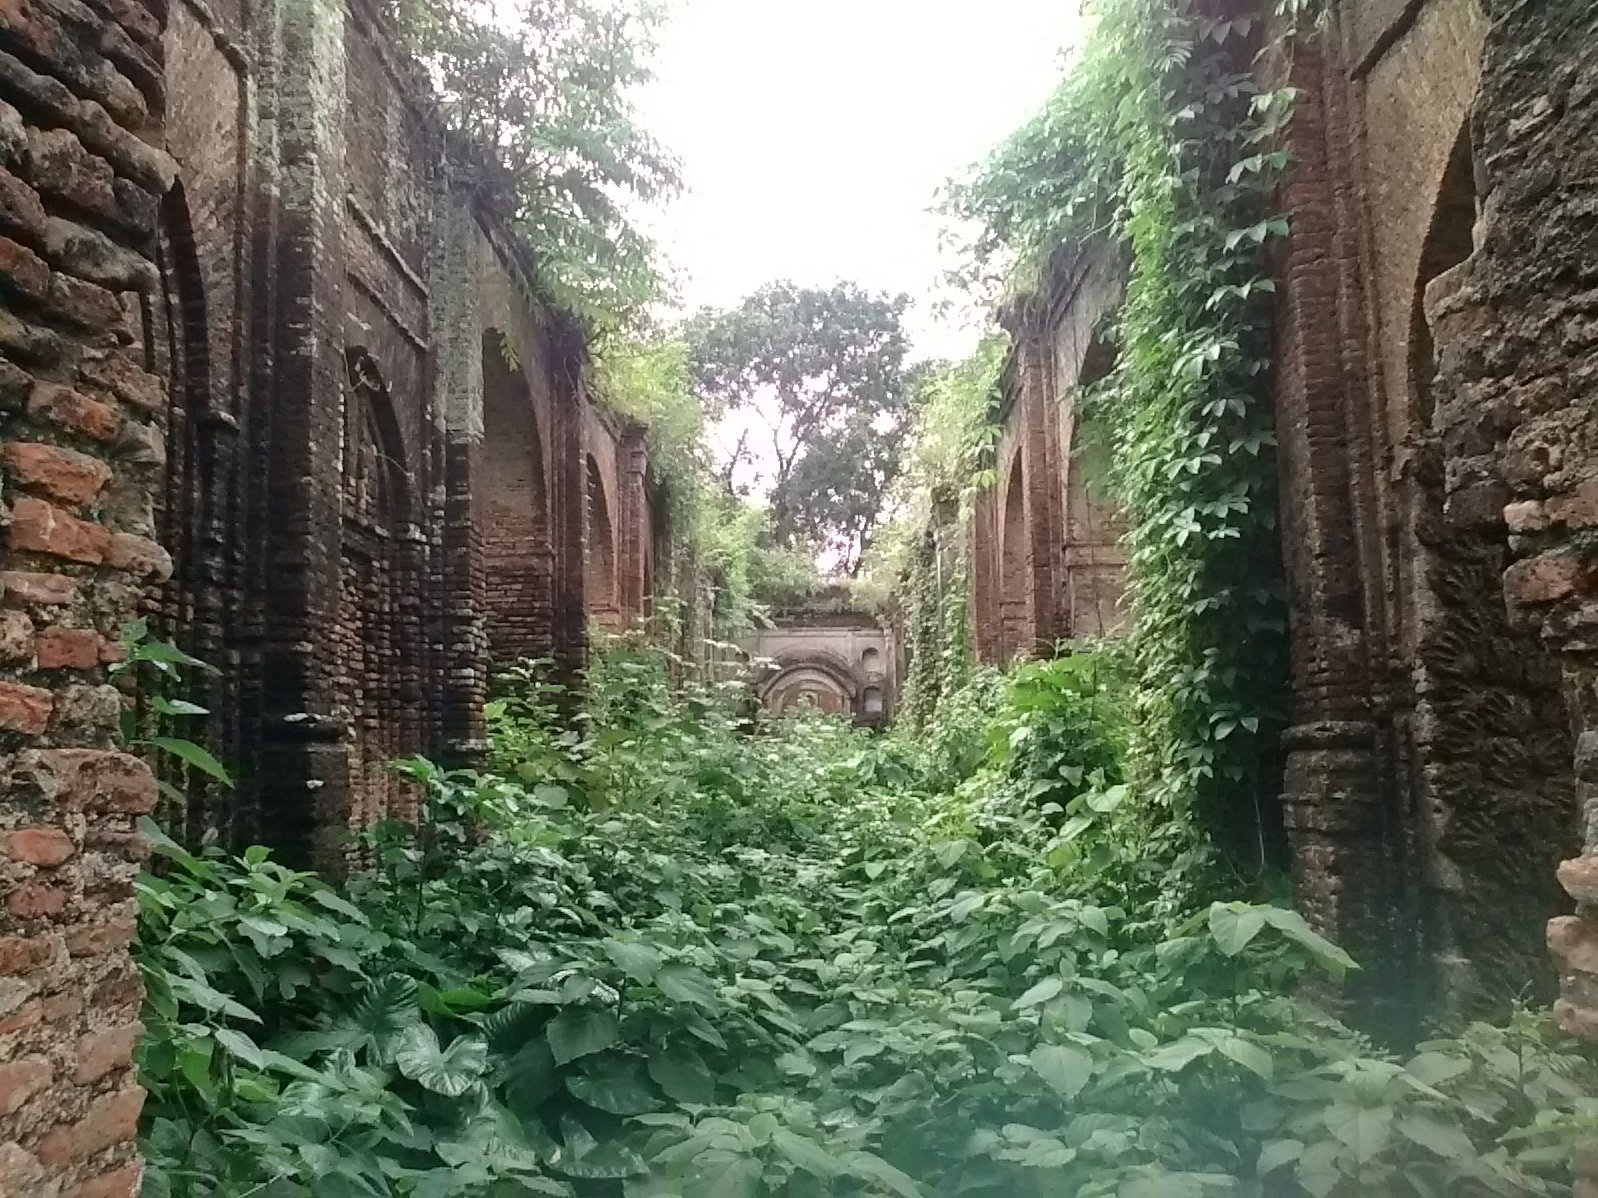 A photographs showing the ruins of the palace and temples built by Rani Bhabani, Murshidabad, partly overgrown with plants